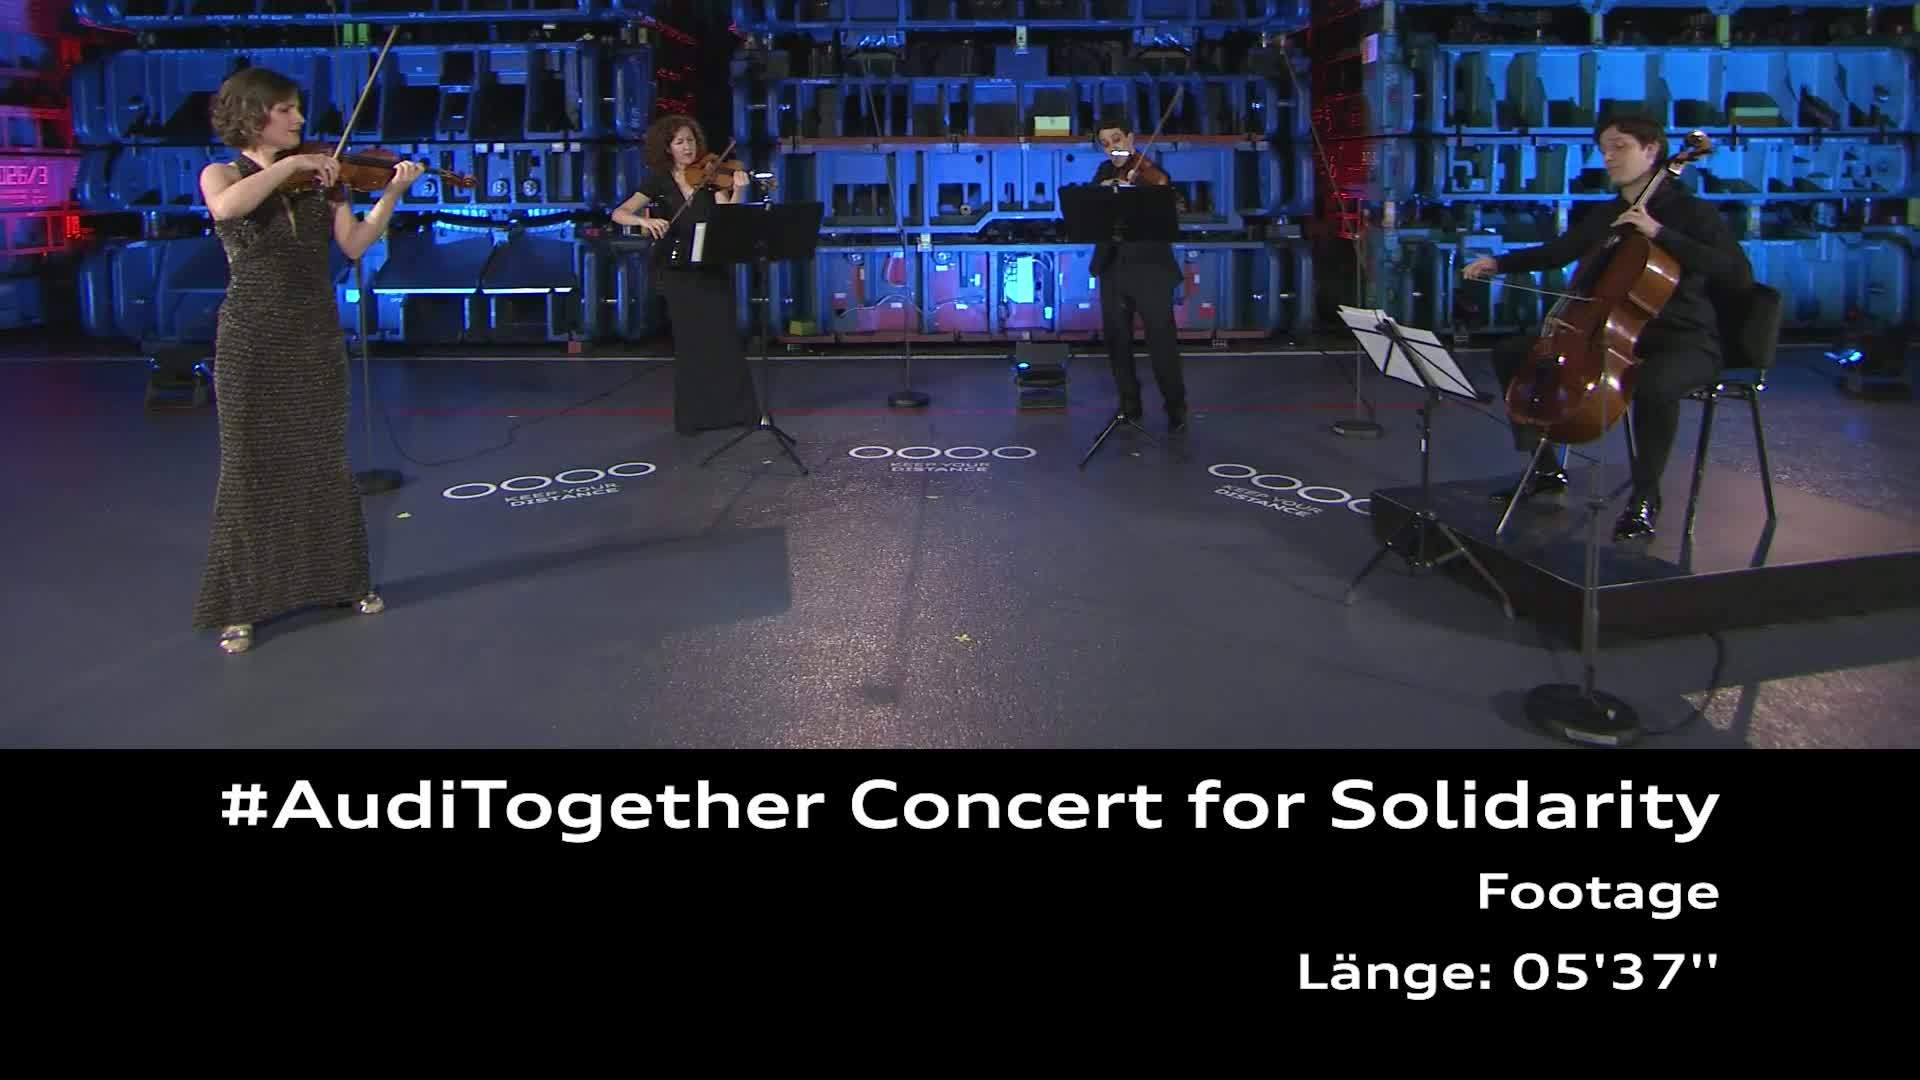 Footage: Concert for Solidarity